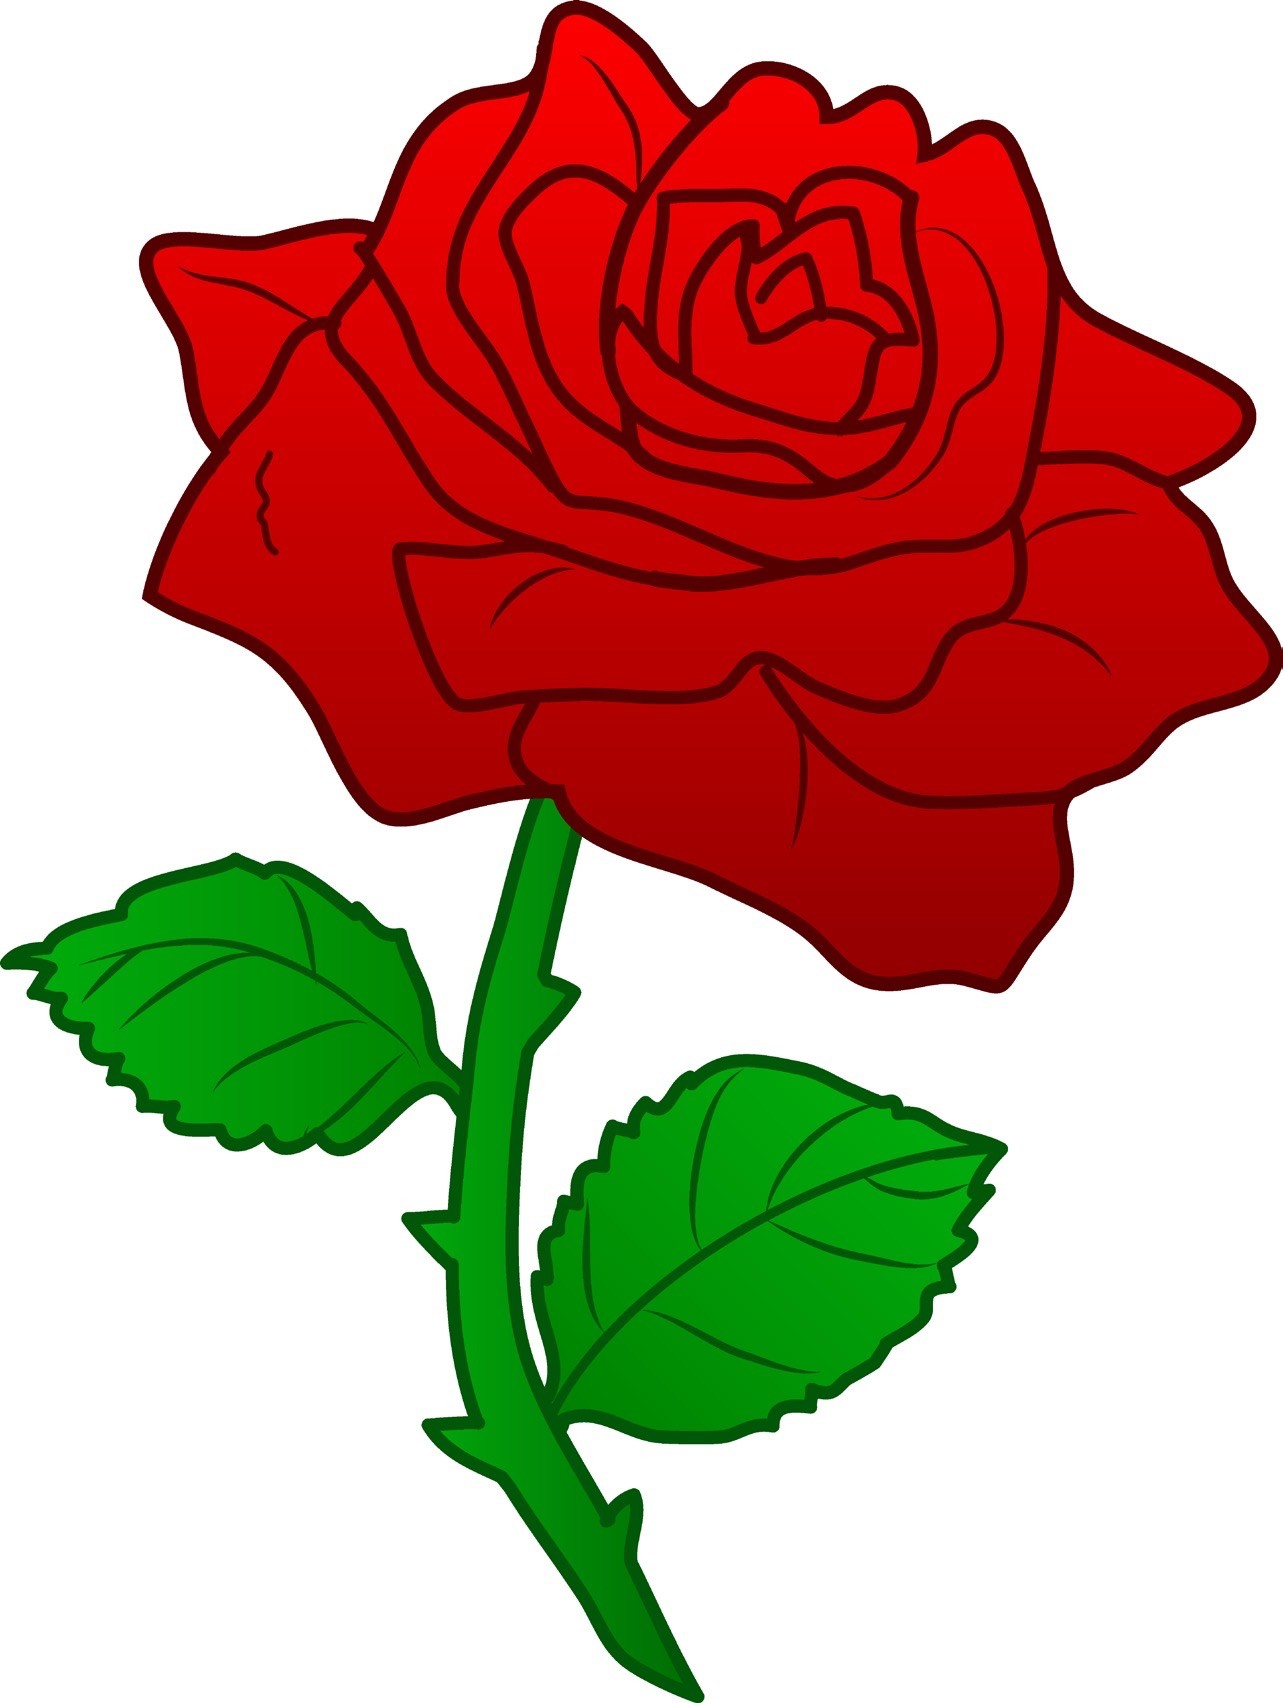 Red rose with thornsV